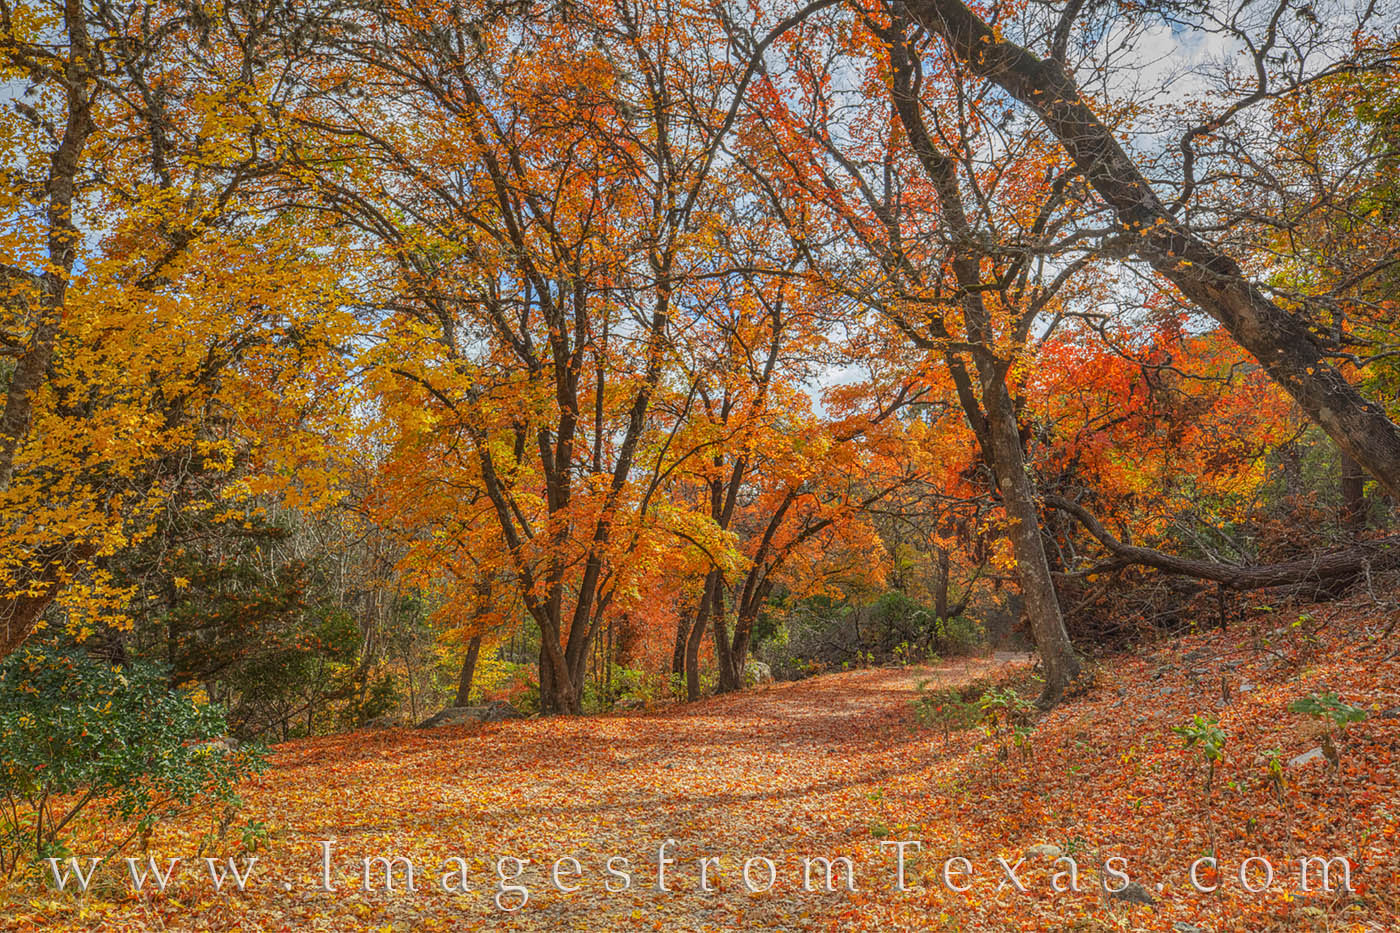 lost maples, lost maples prints, east-west trail, fall, autumn, texas state parks, maples trees